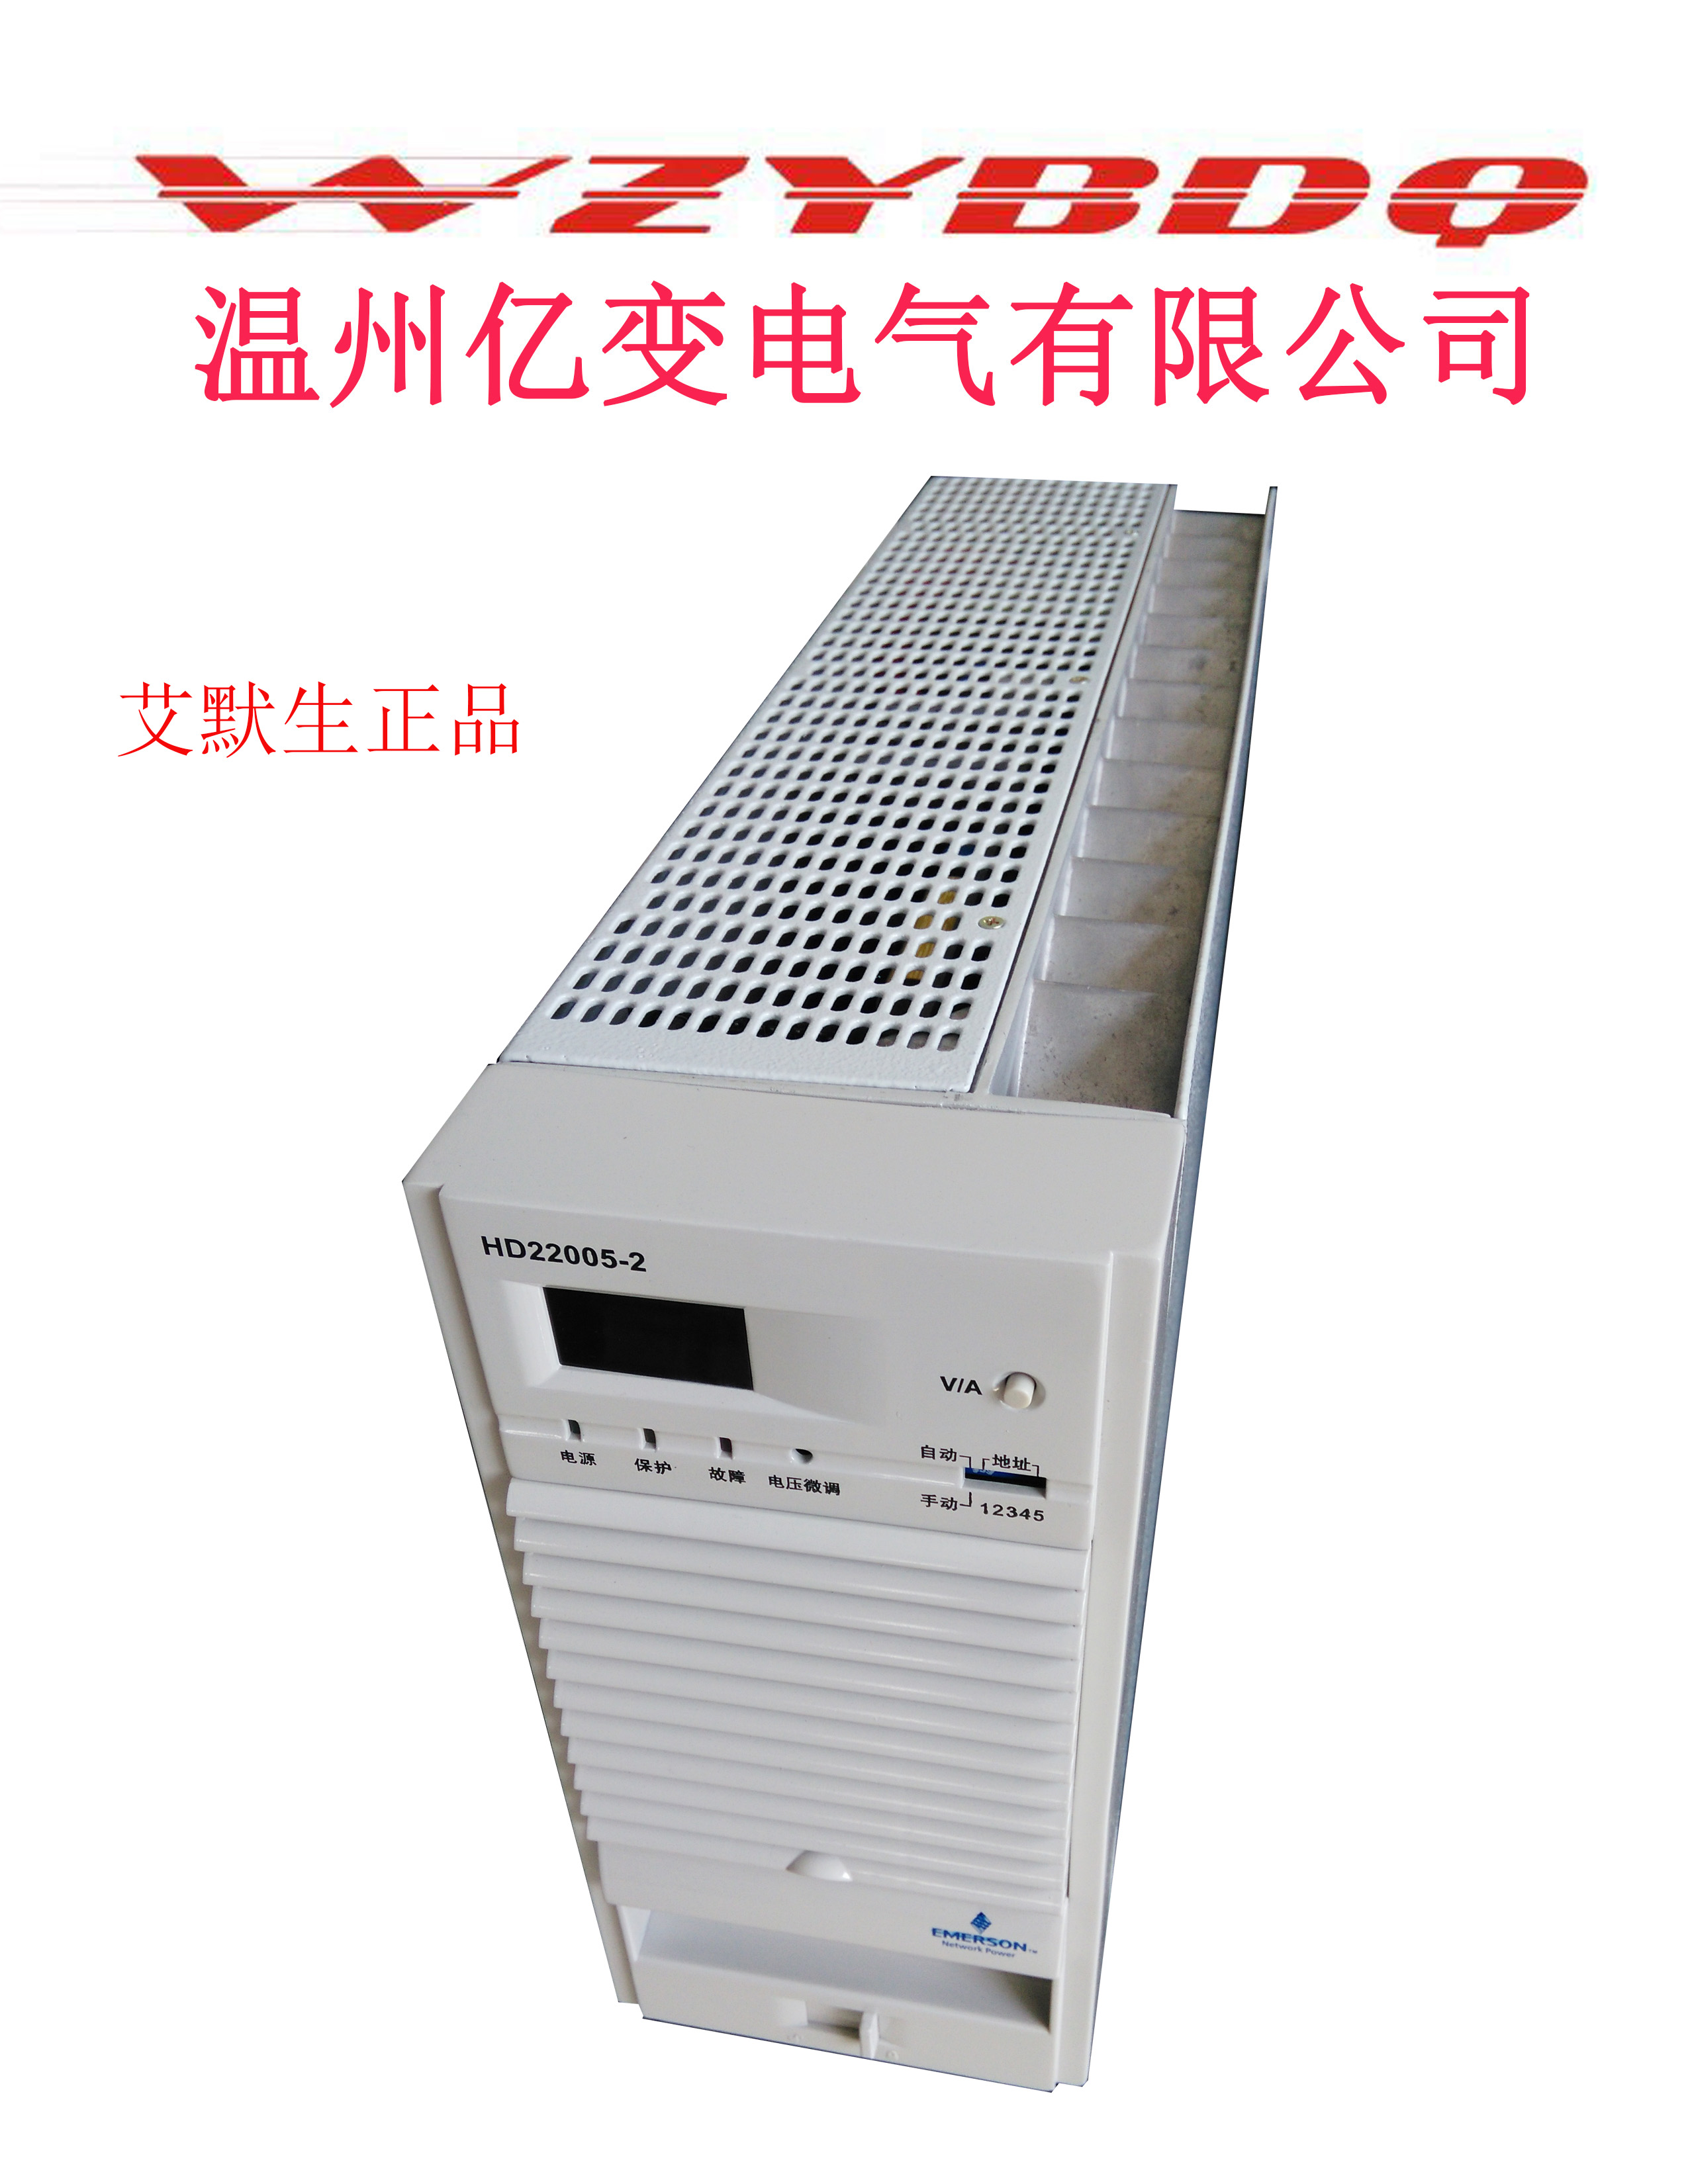 [HD22005-2] our special offer sales power module, DC charging module HD22005-2